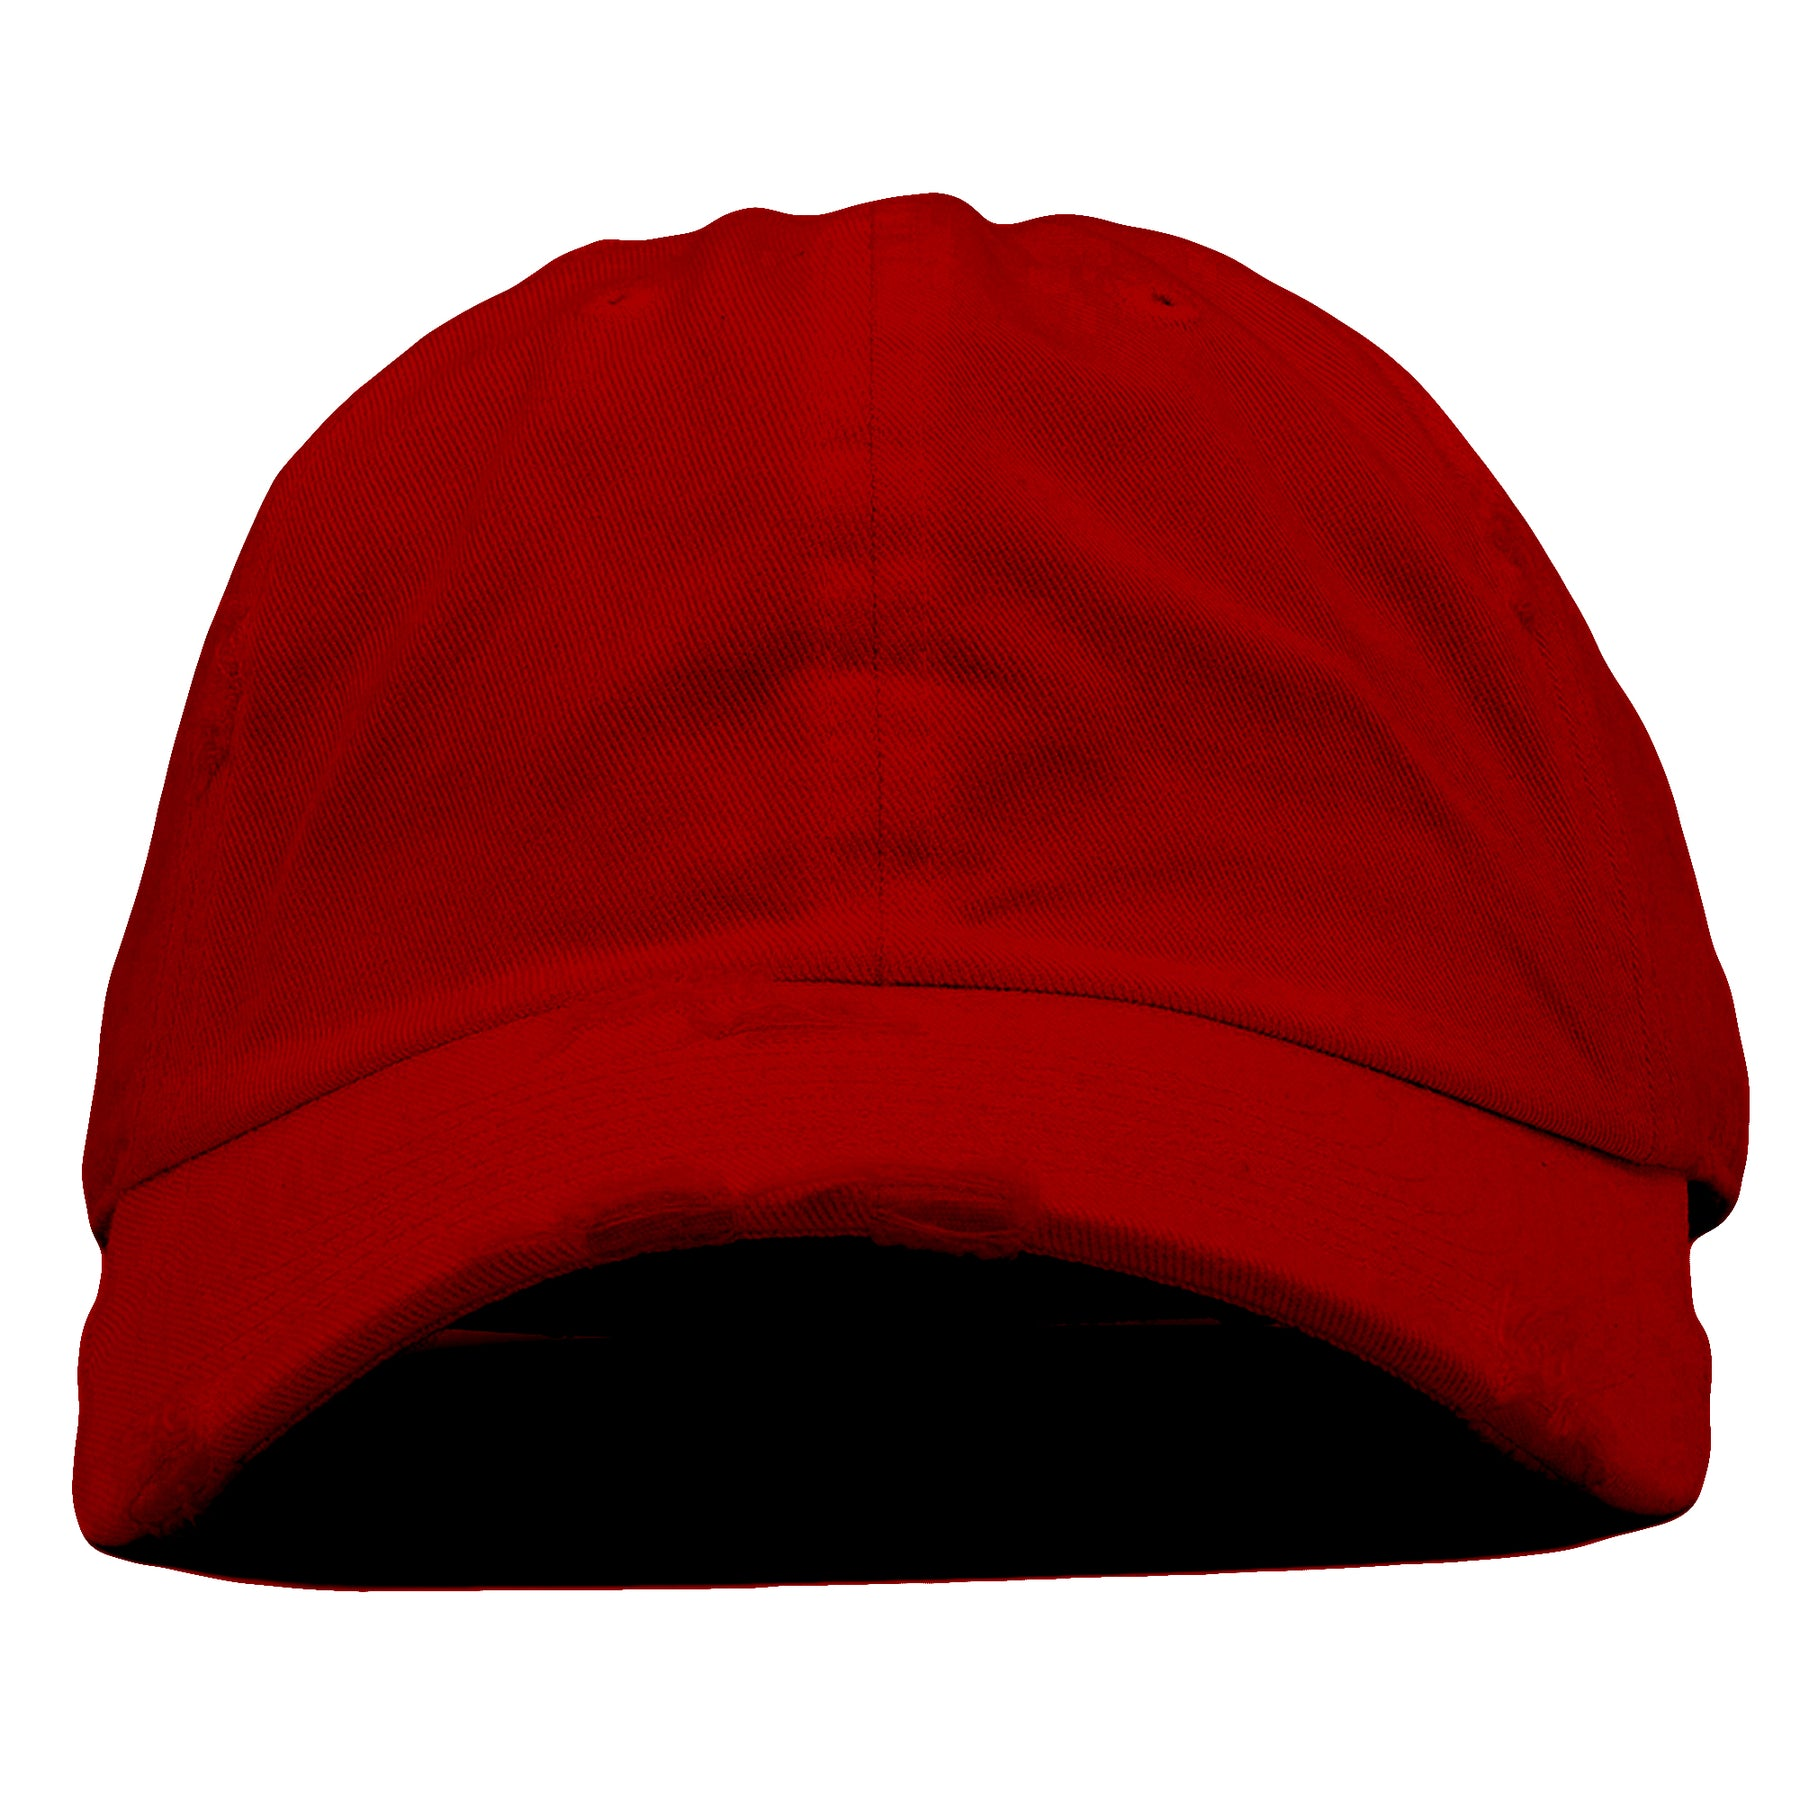 4bd283064a2 The blank maroon vintage distressed dad hat has a soft crown and a bent  brim.